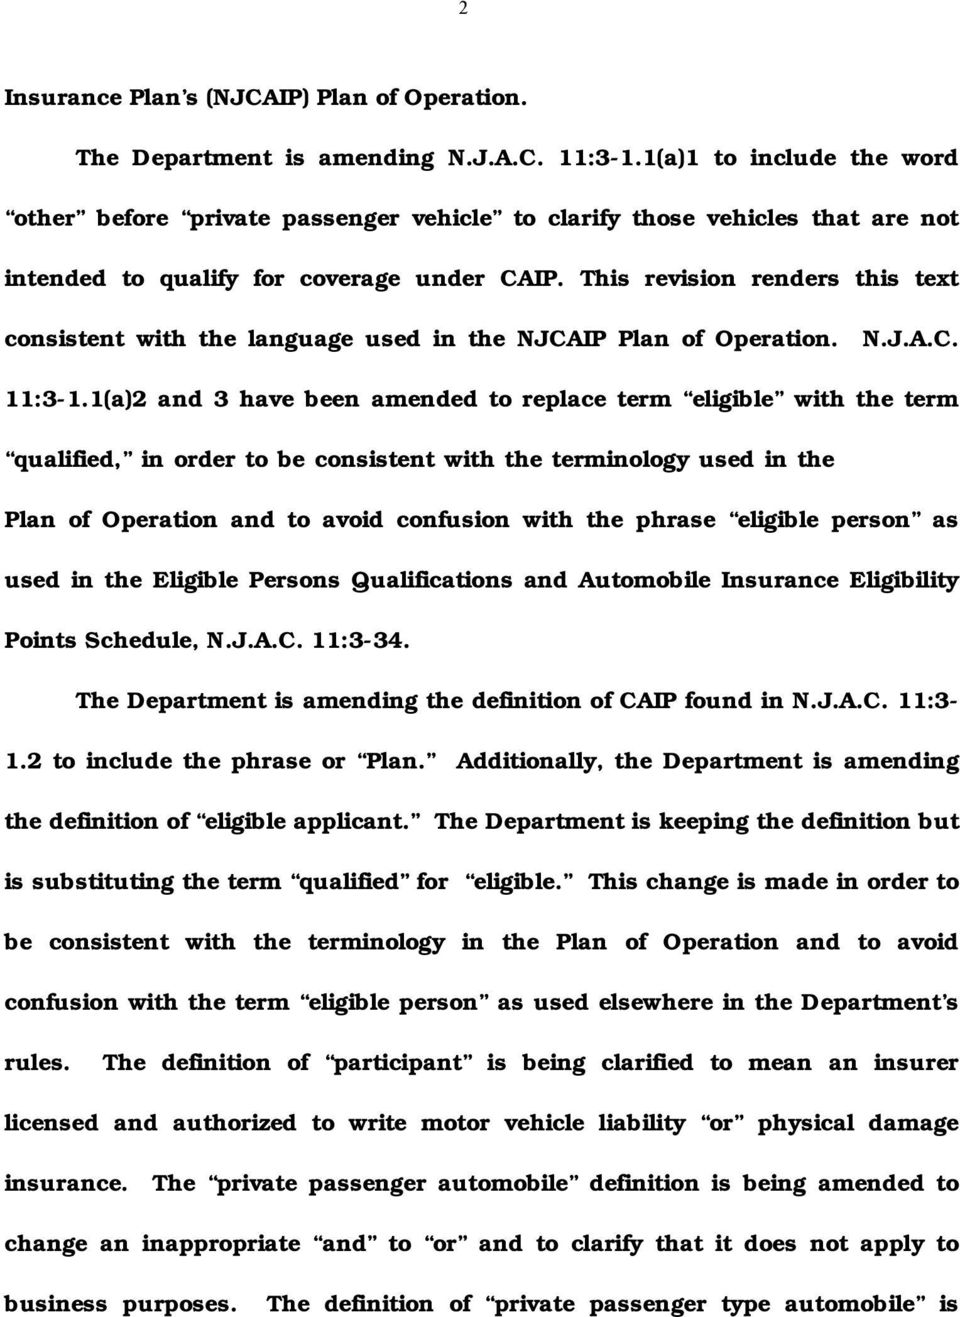 This revision renders this text consistent with the language used in the NJCAIP Plan of Operation. N.J.A.C. 11:3-1.